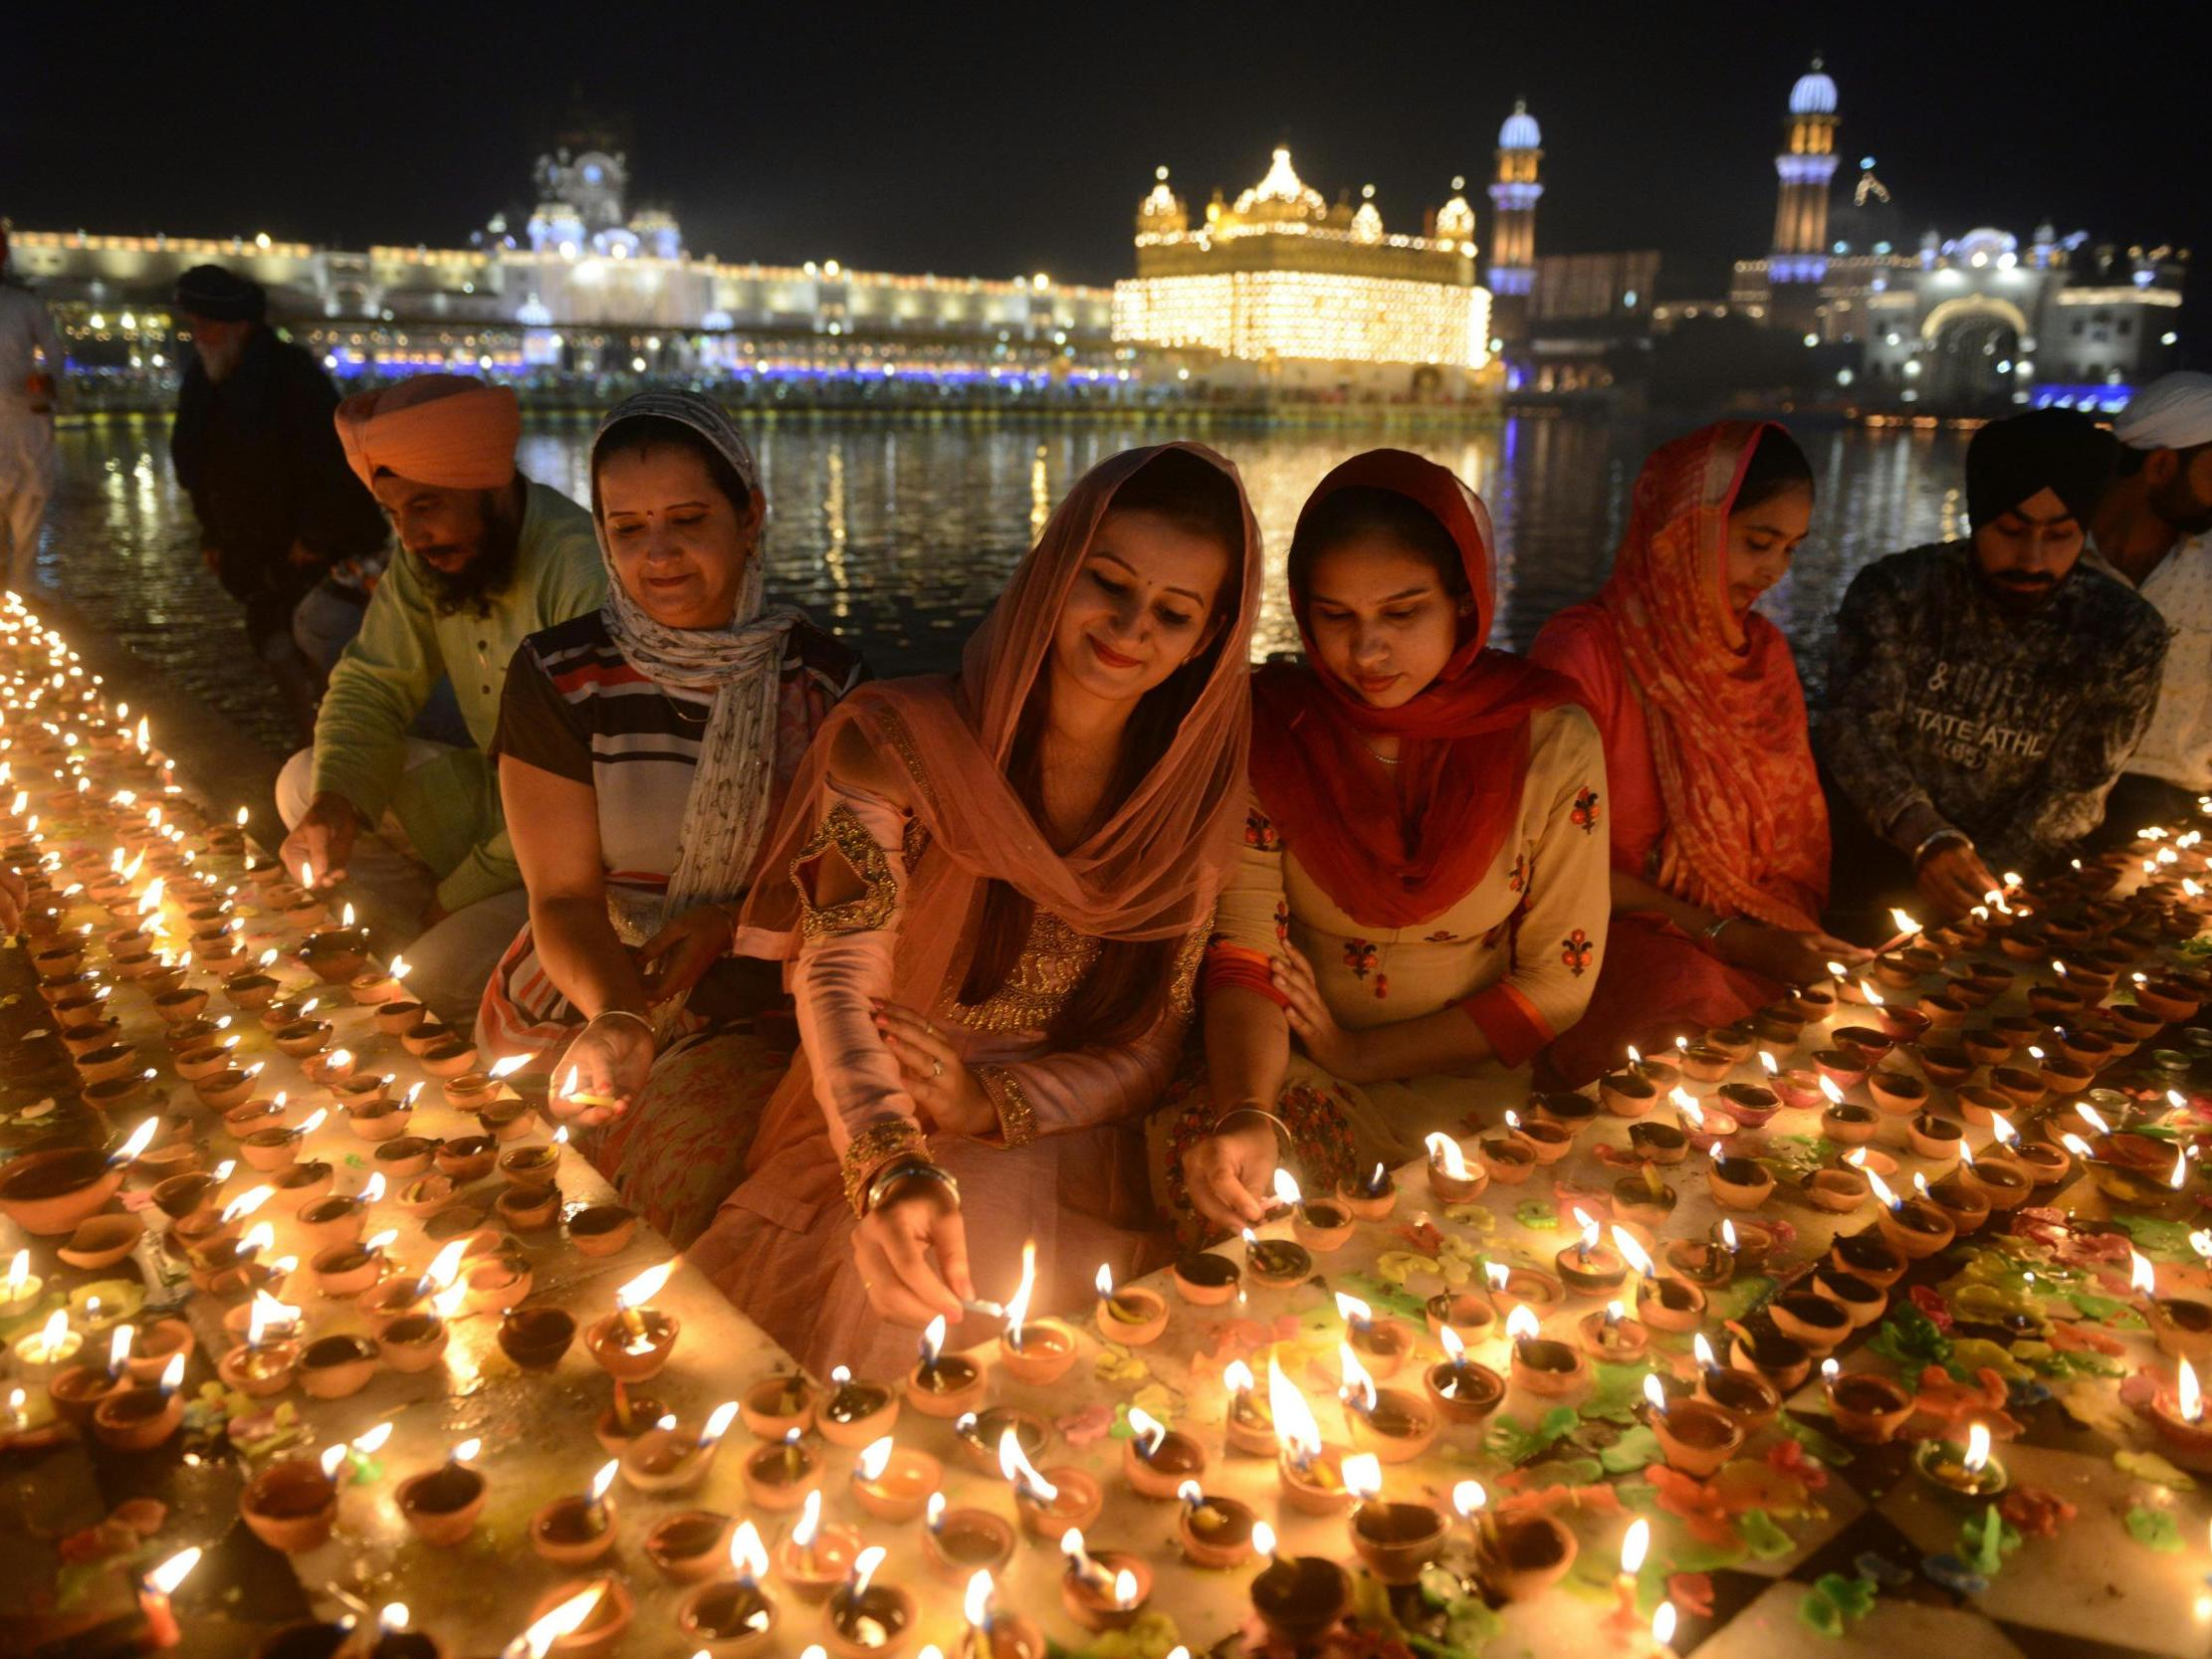 Essay on Diwali in English for Kids & Students of Class 1, 2, 3, 4, 5, 6, 7, 8